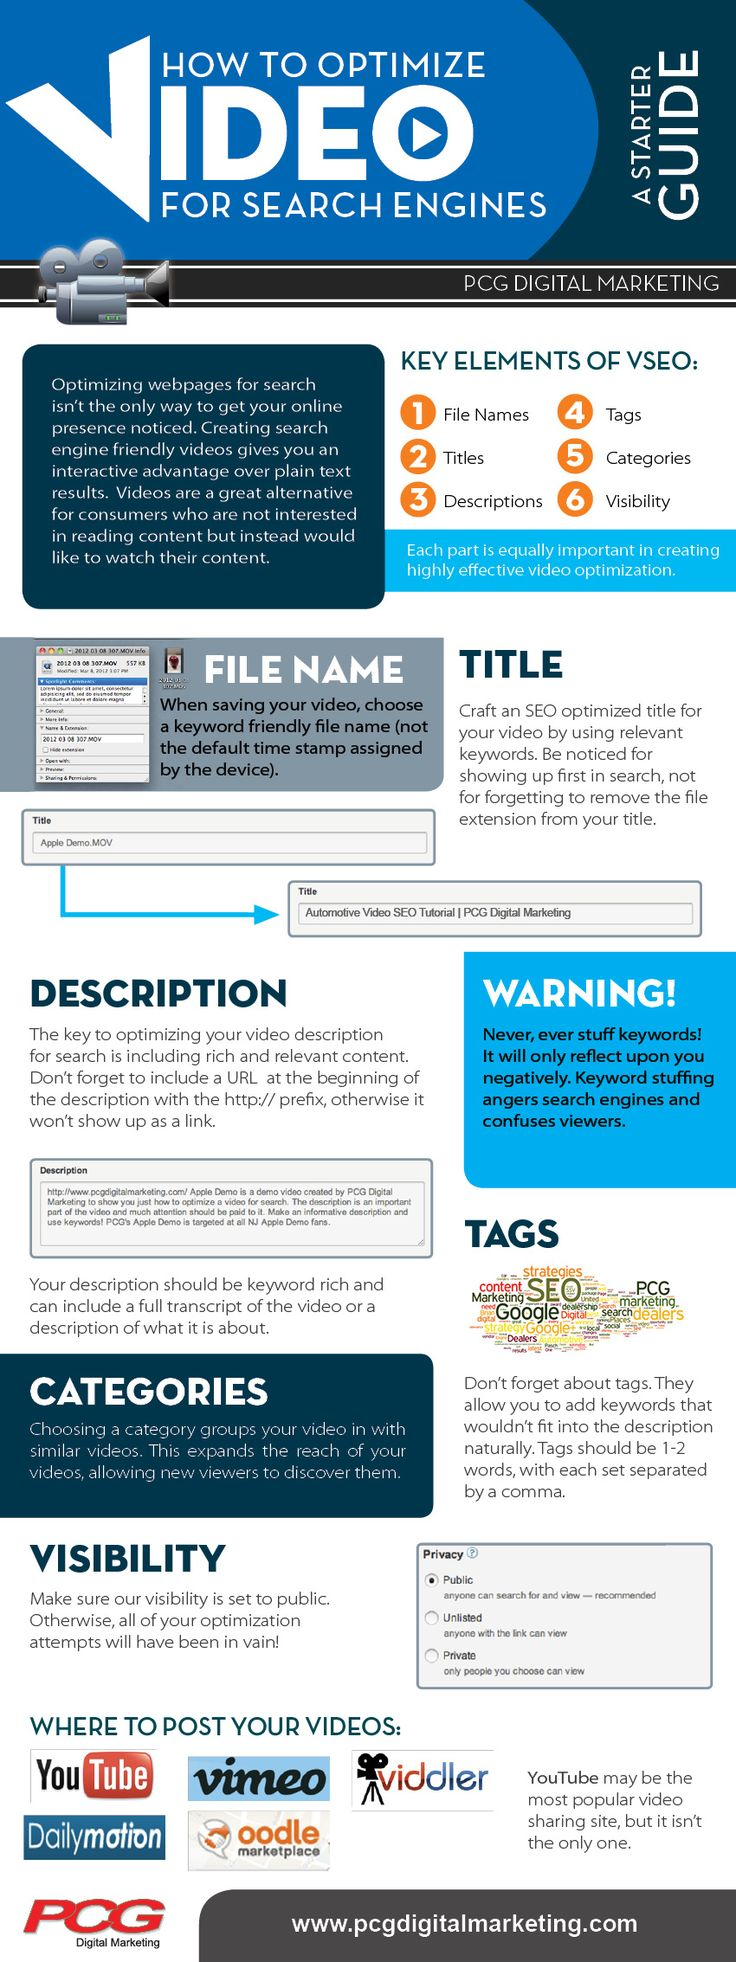 Infographic: Video Optimization Starter Guide - www.pcgdigitalmarketing.com